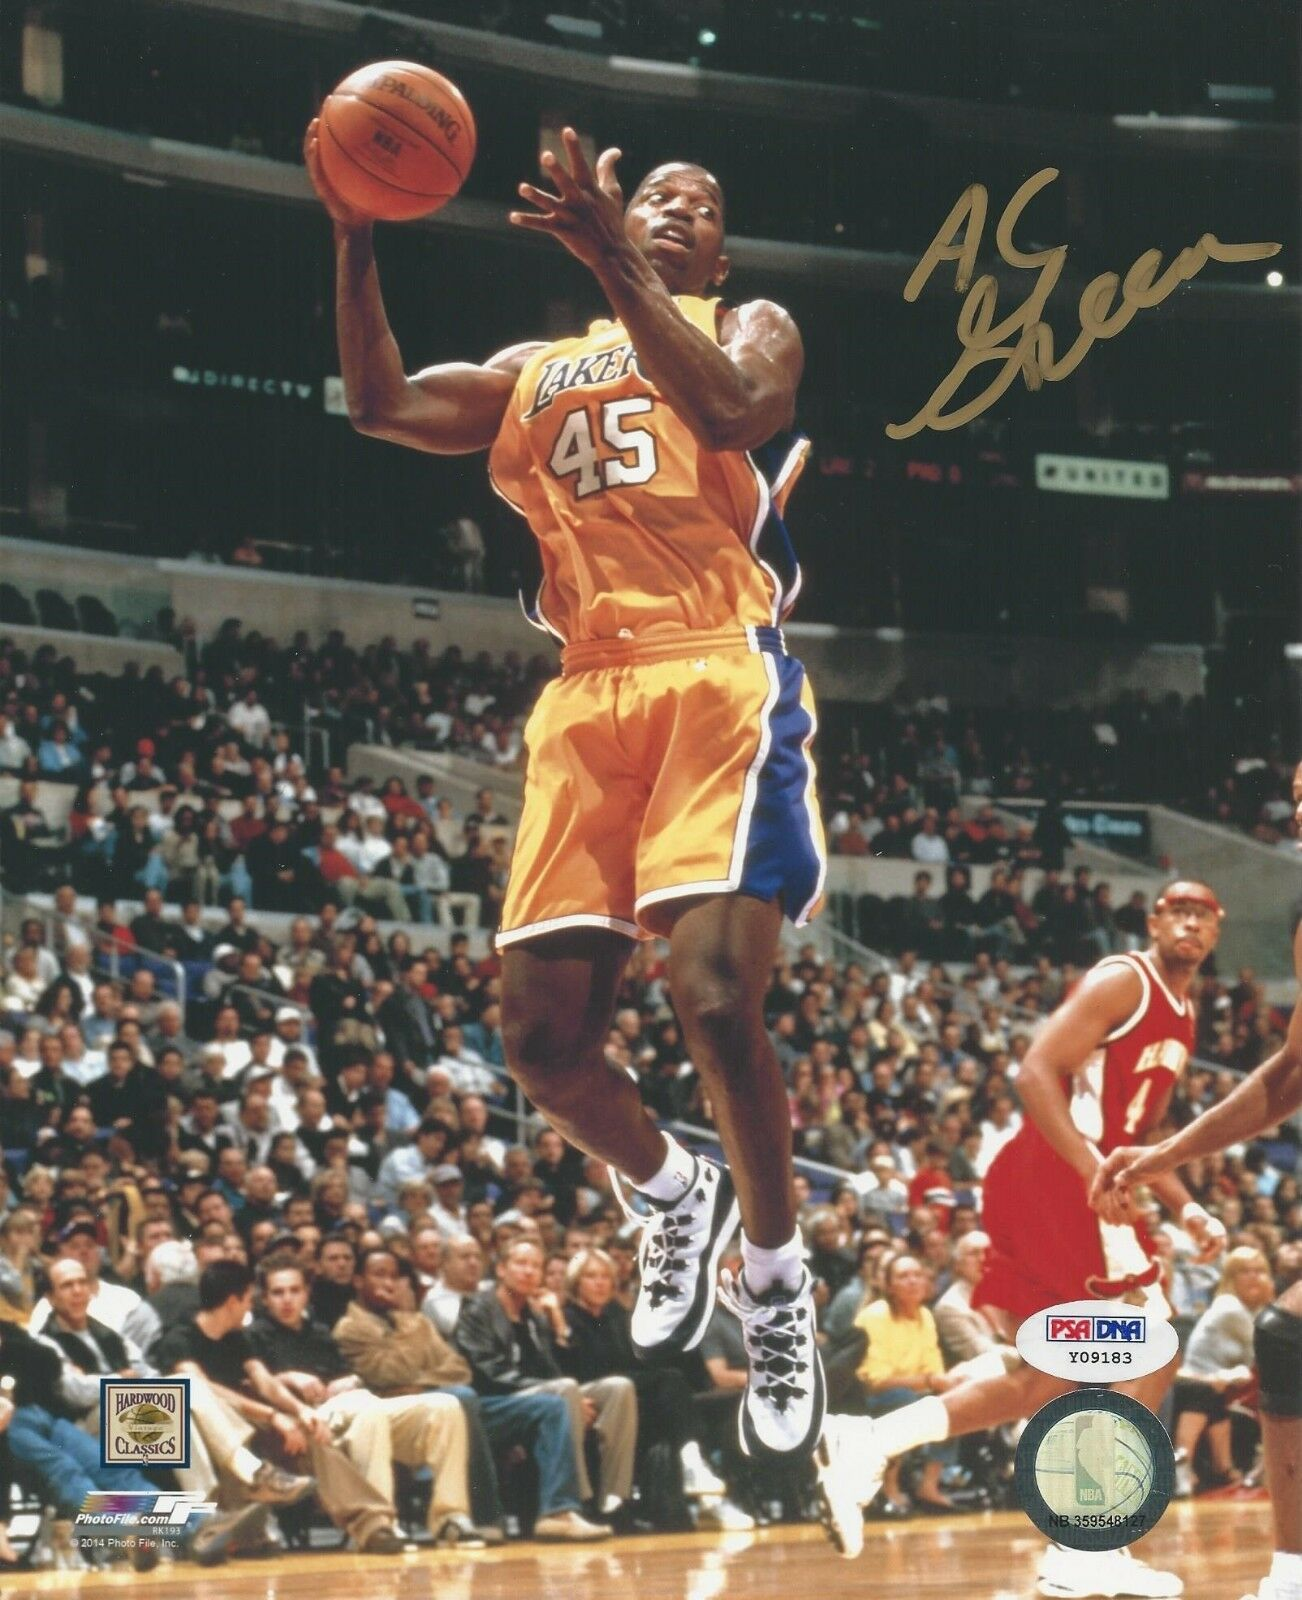 Ac Green LA Lakers Signed 8x10 Photo PSA/DNA # Y09183